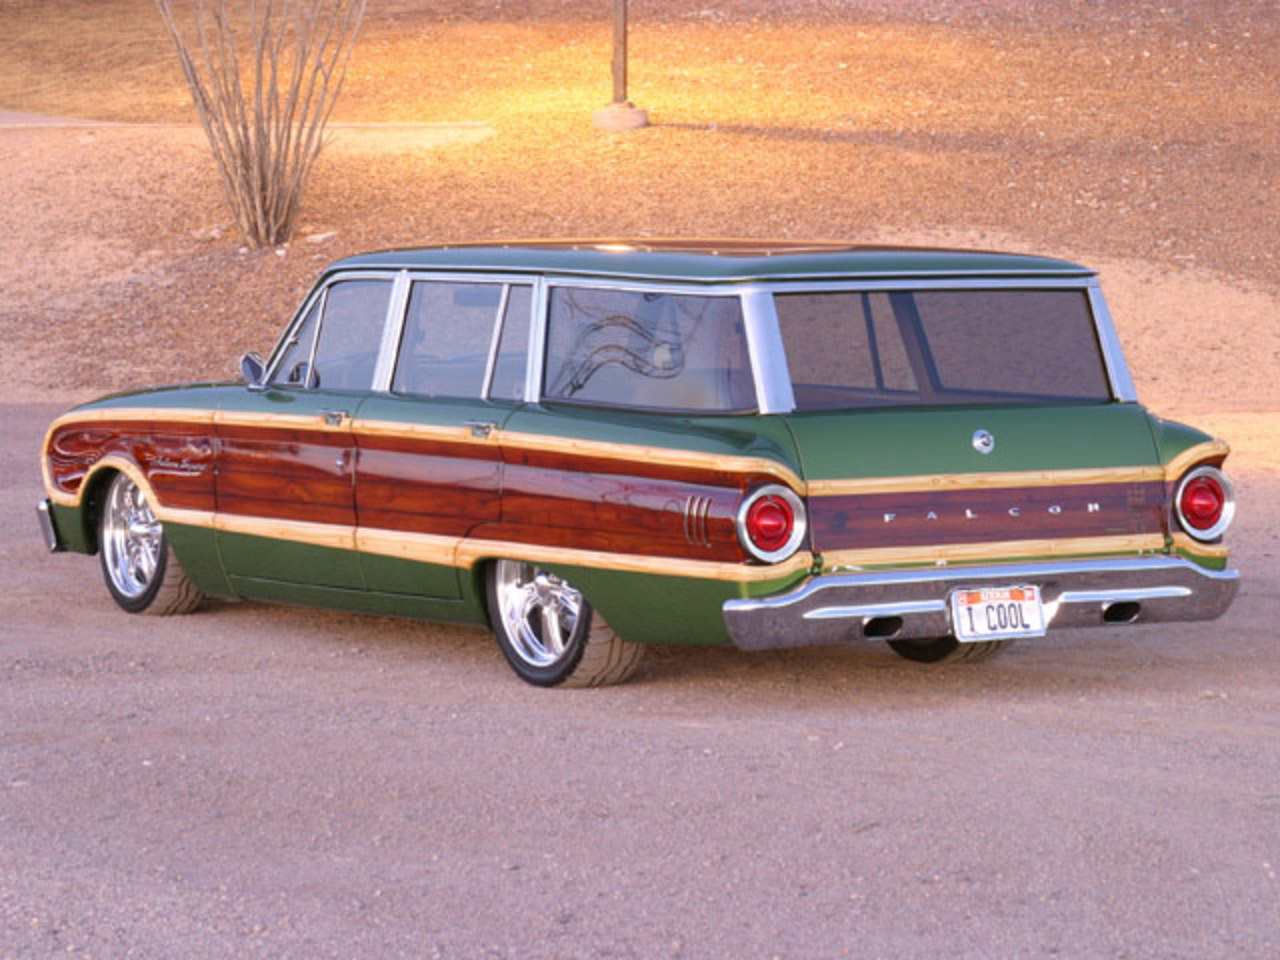 1963 Ford Falcon Wagon